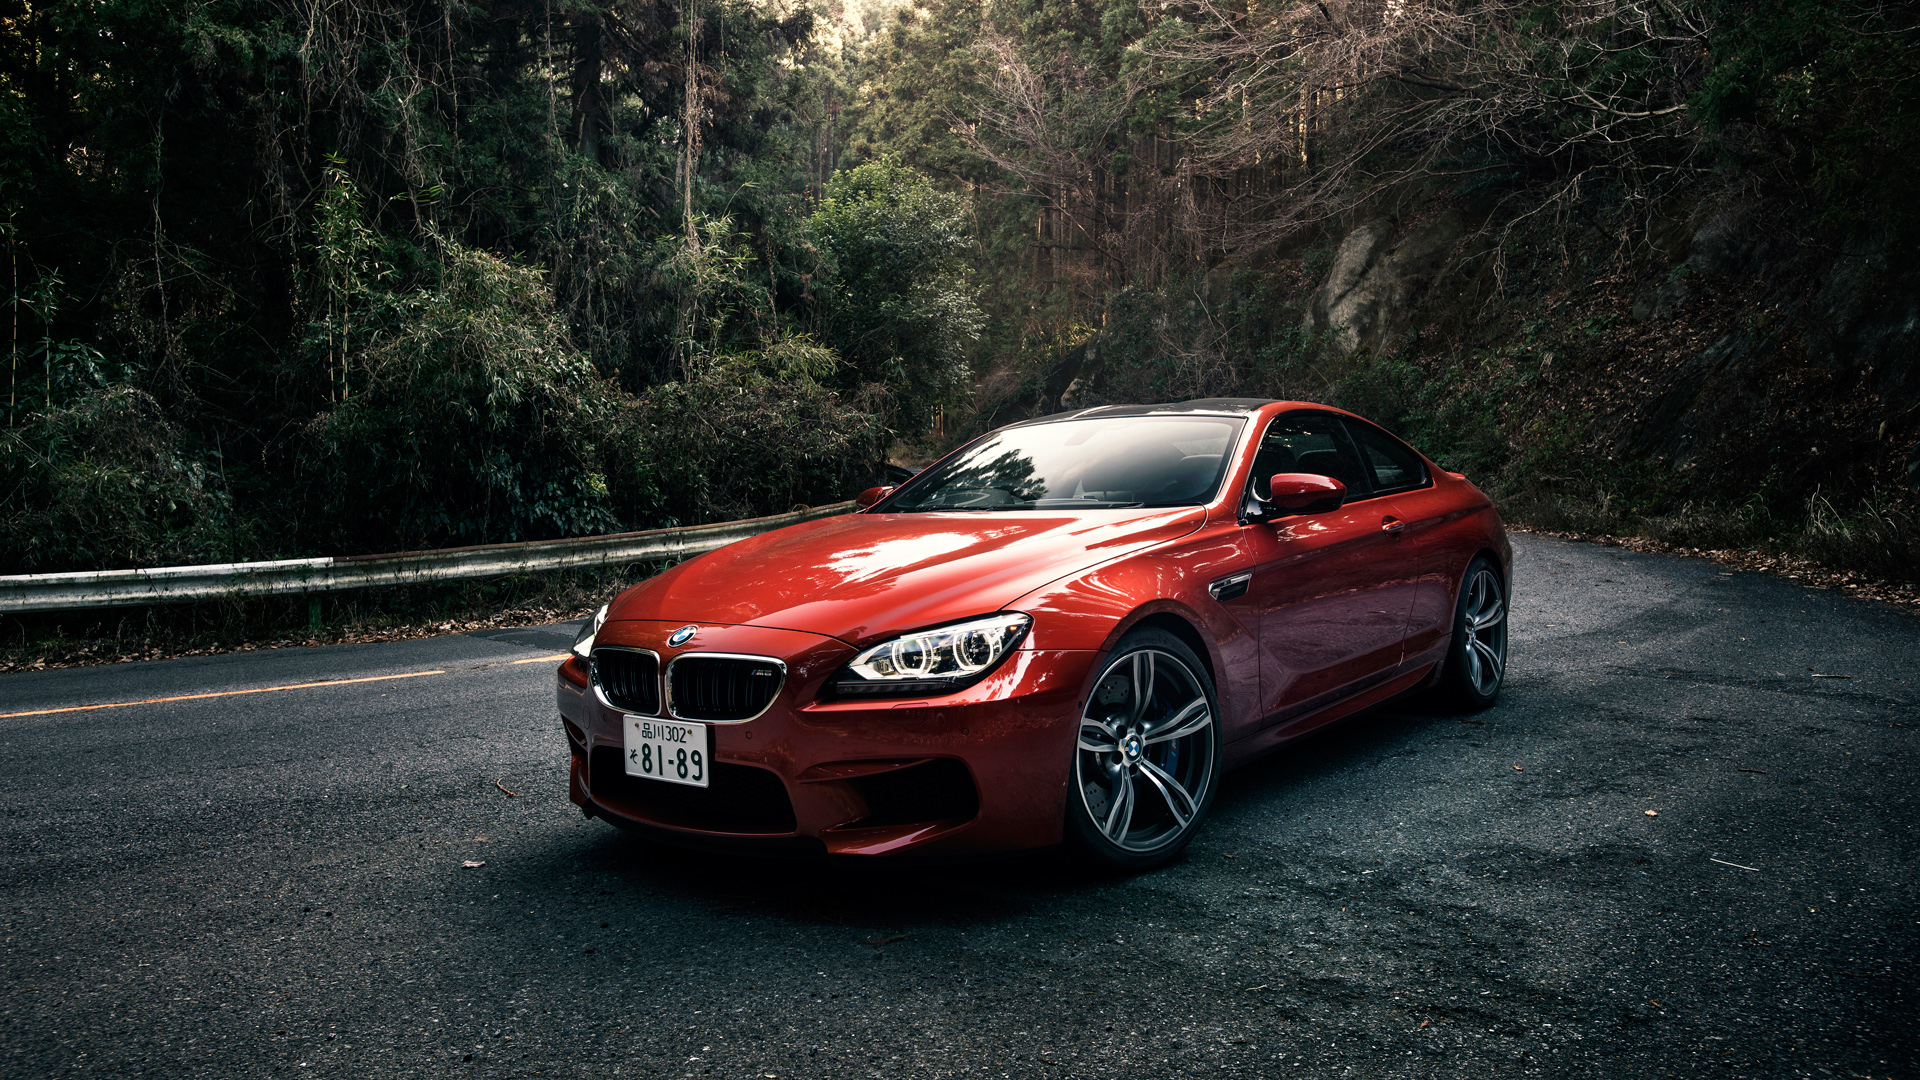 BMW M6 2 Wallpaper HD Car Wallpapers 1920x1080